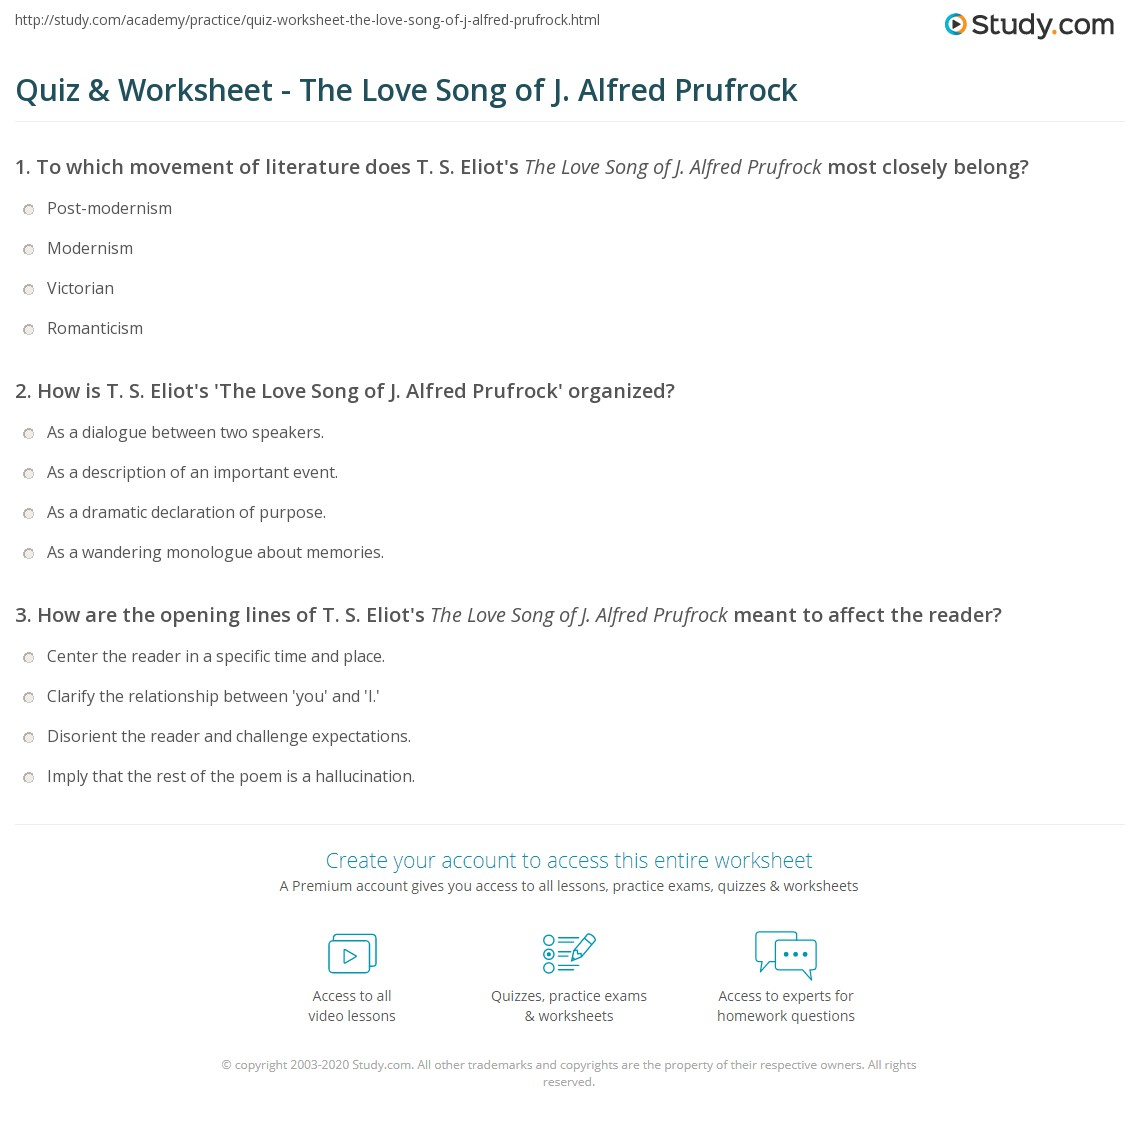 quiz worksheet the love song of j alfred prufrock. Black Bedroom Furniture Sets. Home Design Ideas